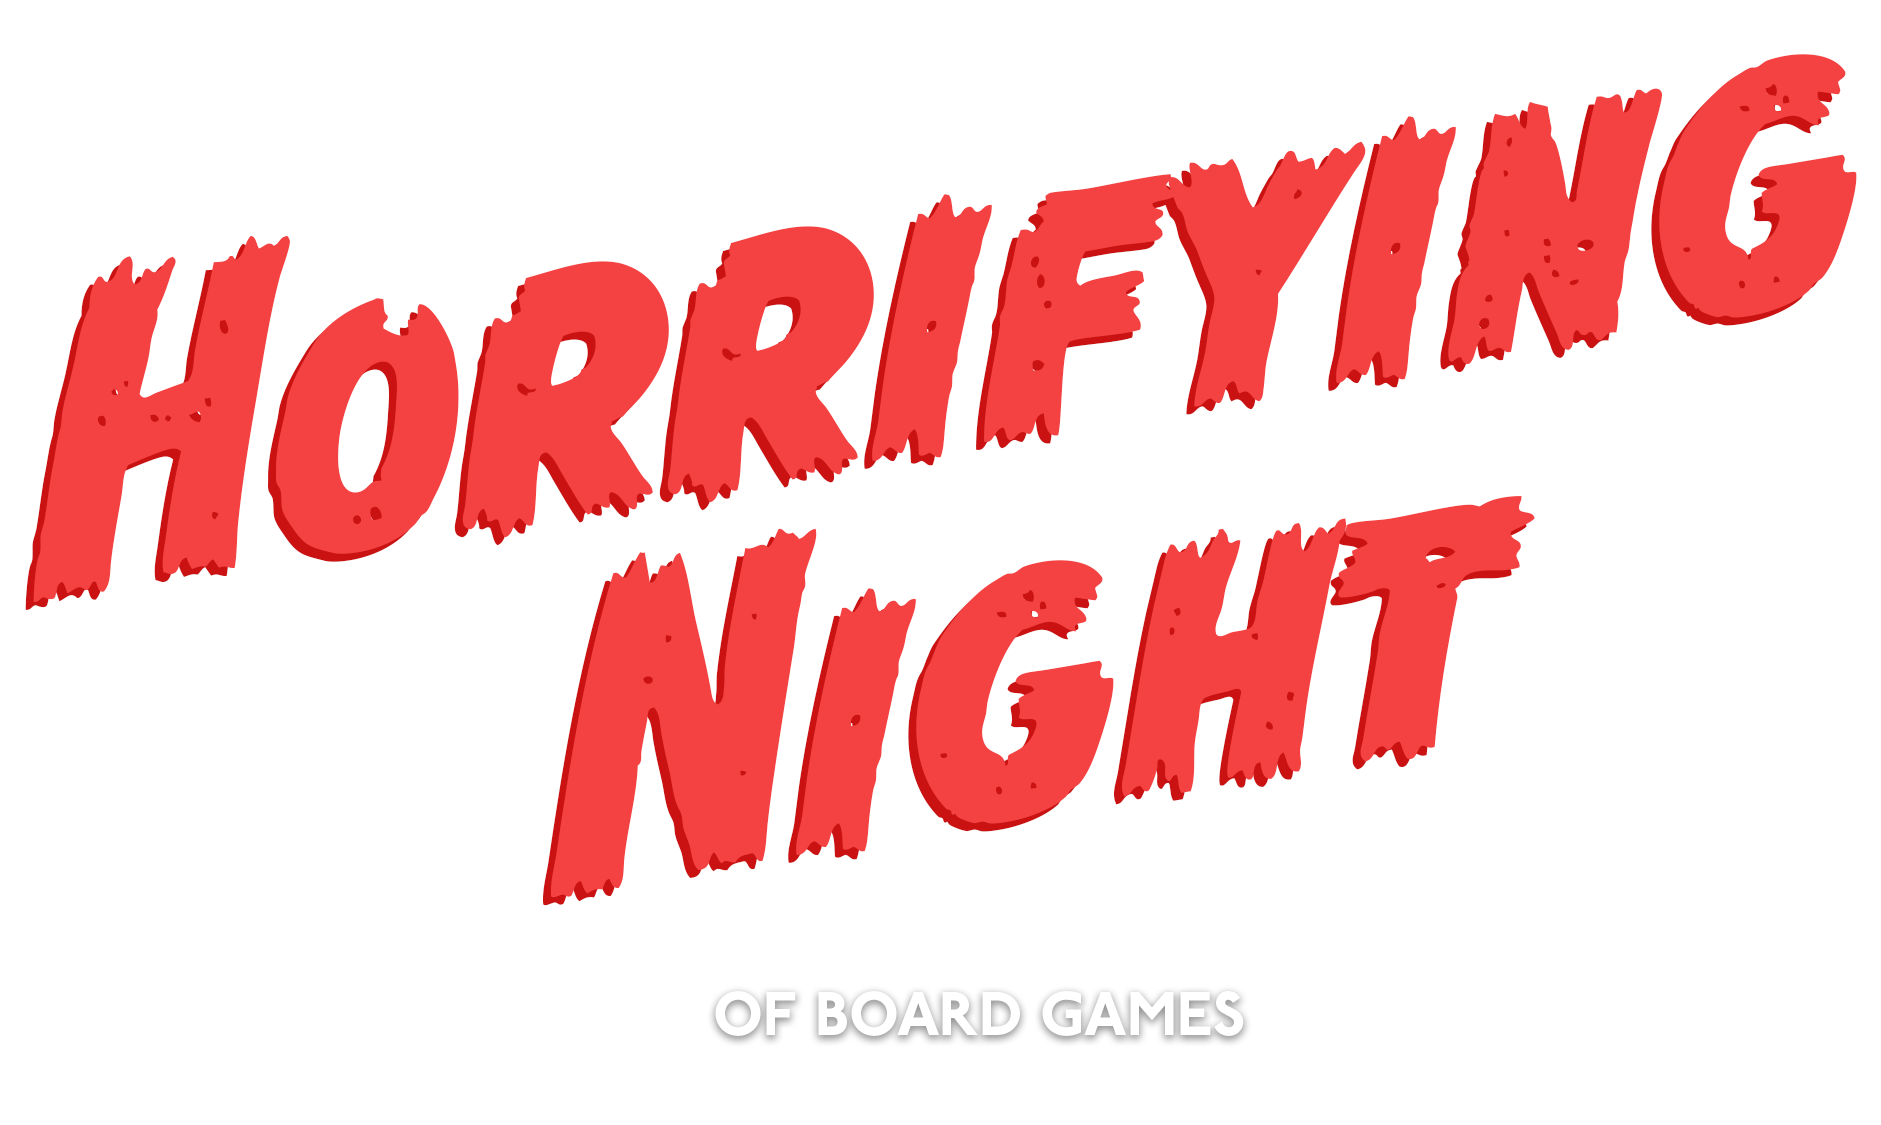 Horrifying night of board games